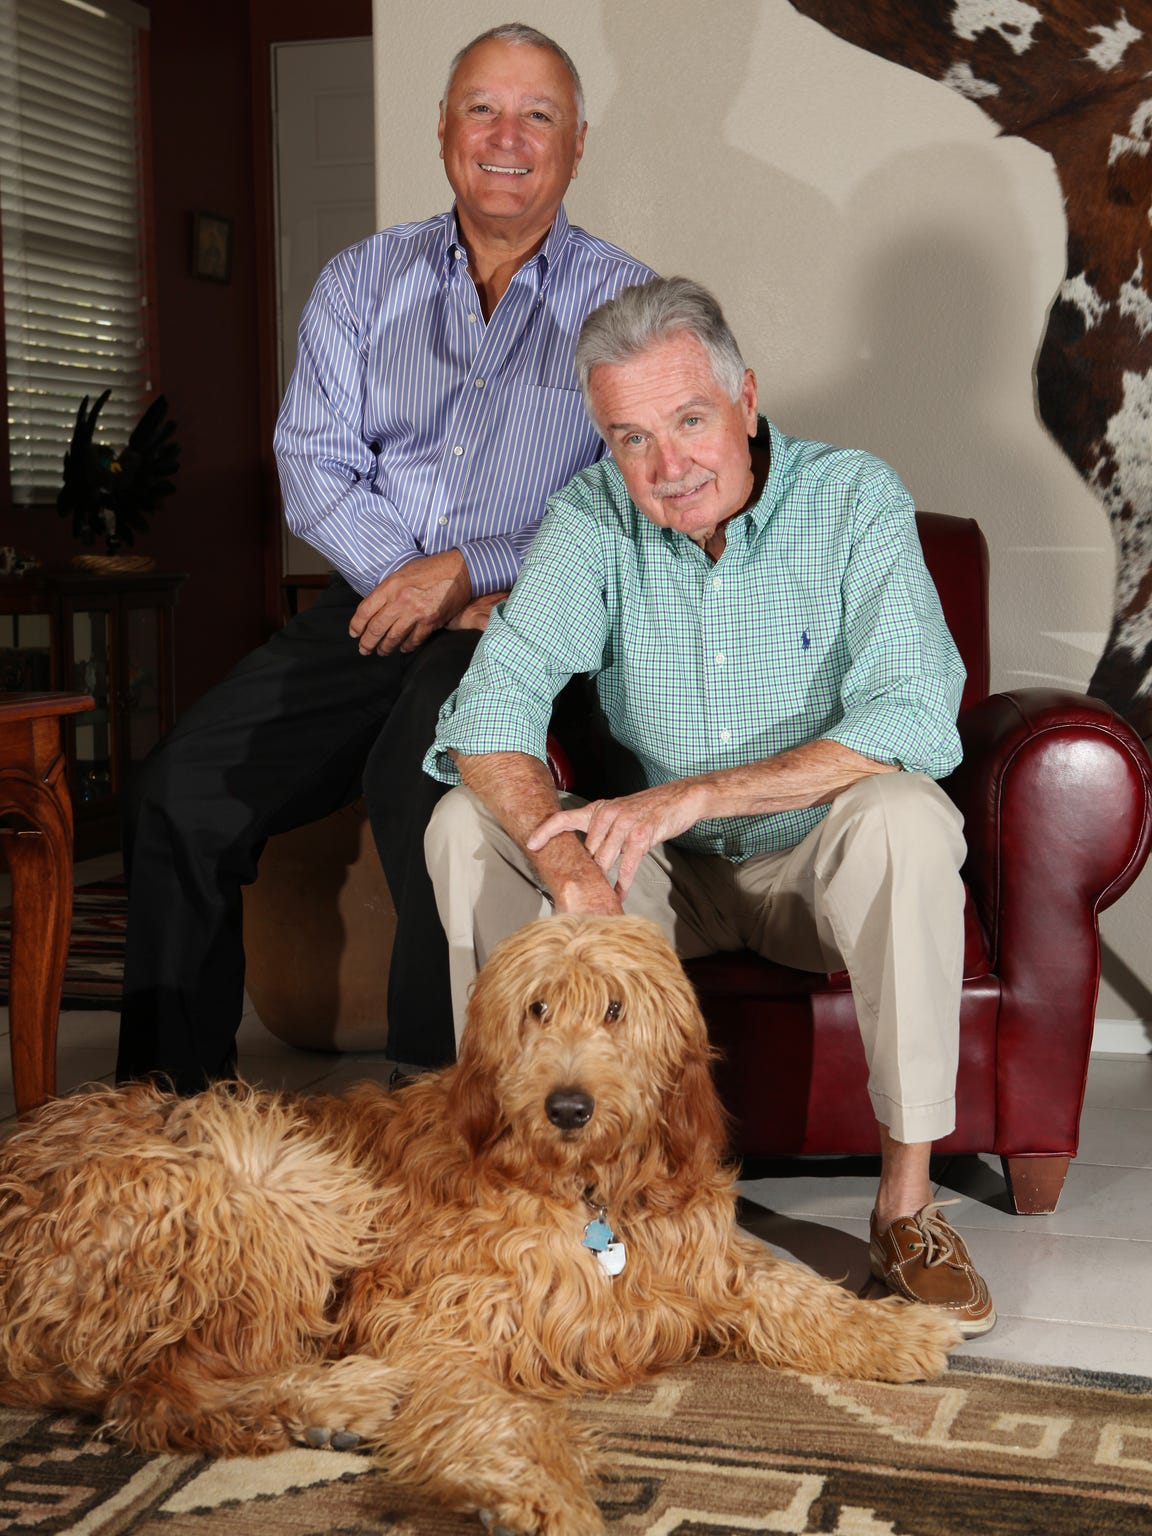 The Farago Family: (From left) Welles Farago, 68, and Marc Clausen, 74, who have been together for 42 years, with their dog Zachary on Tuesday, November 26, 2013 in Cathedral City, Calif.